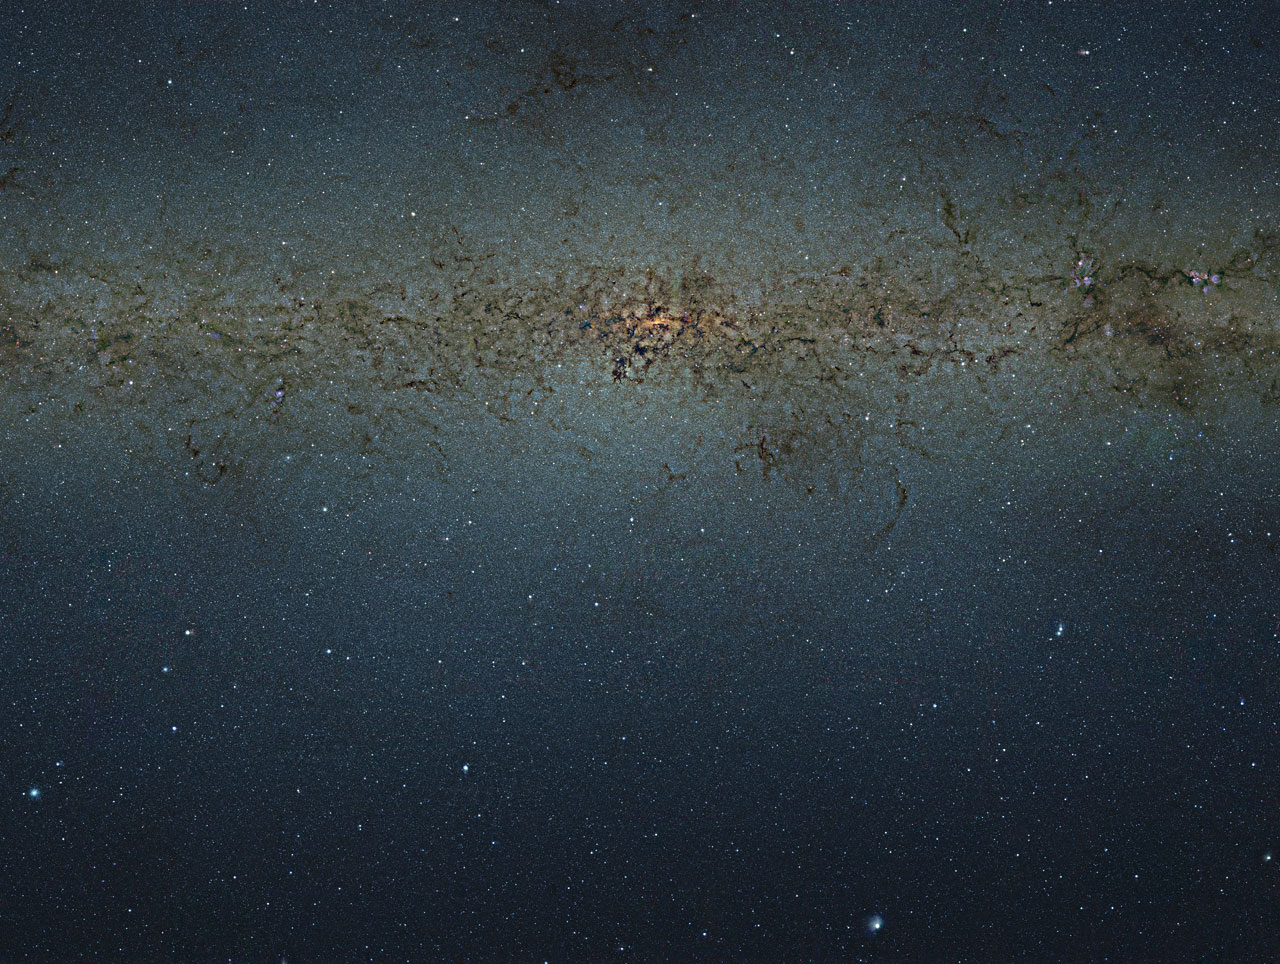 VISTA telescope: 9 billion pixel photo of a Milky Way